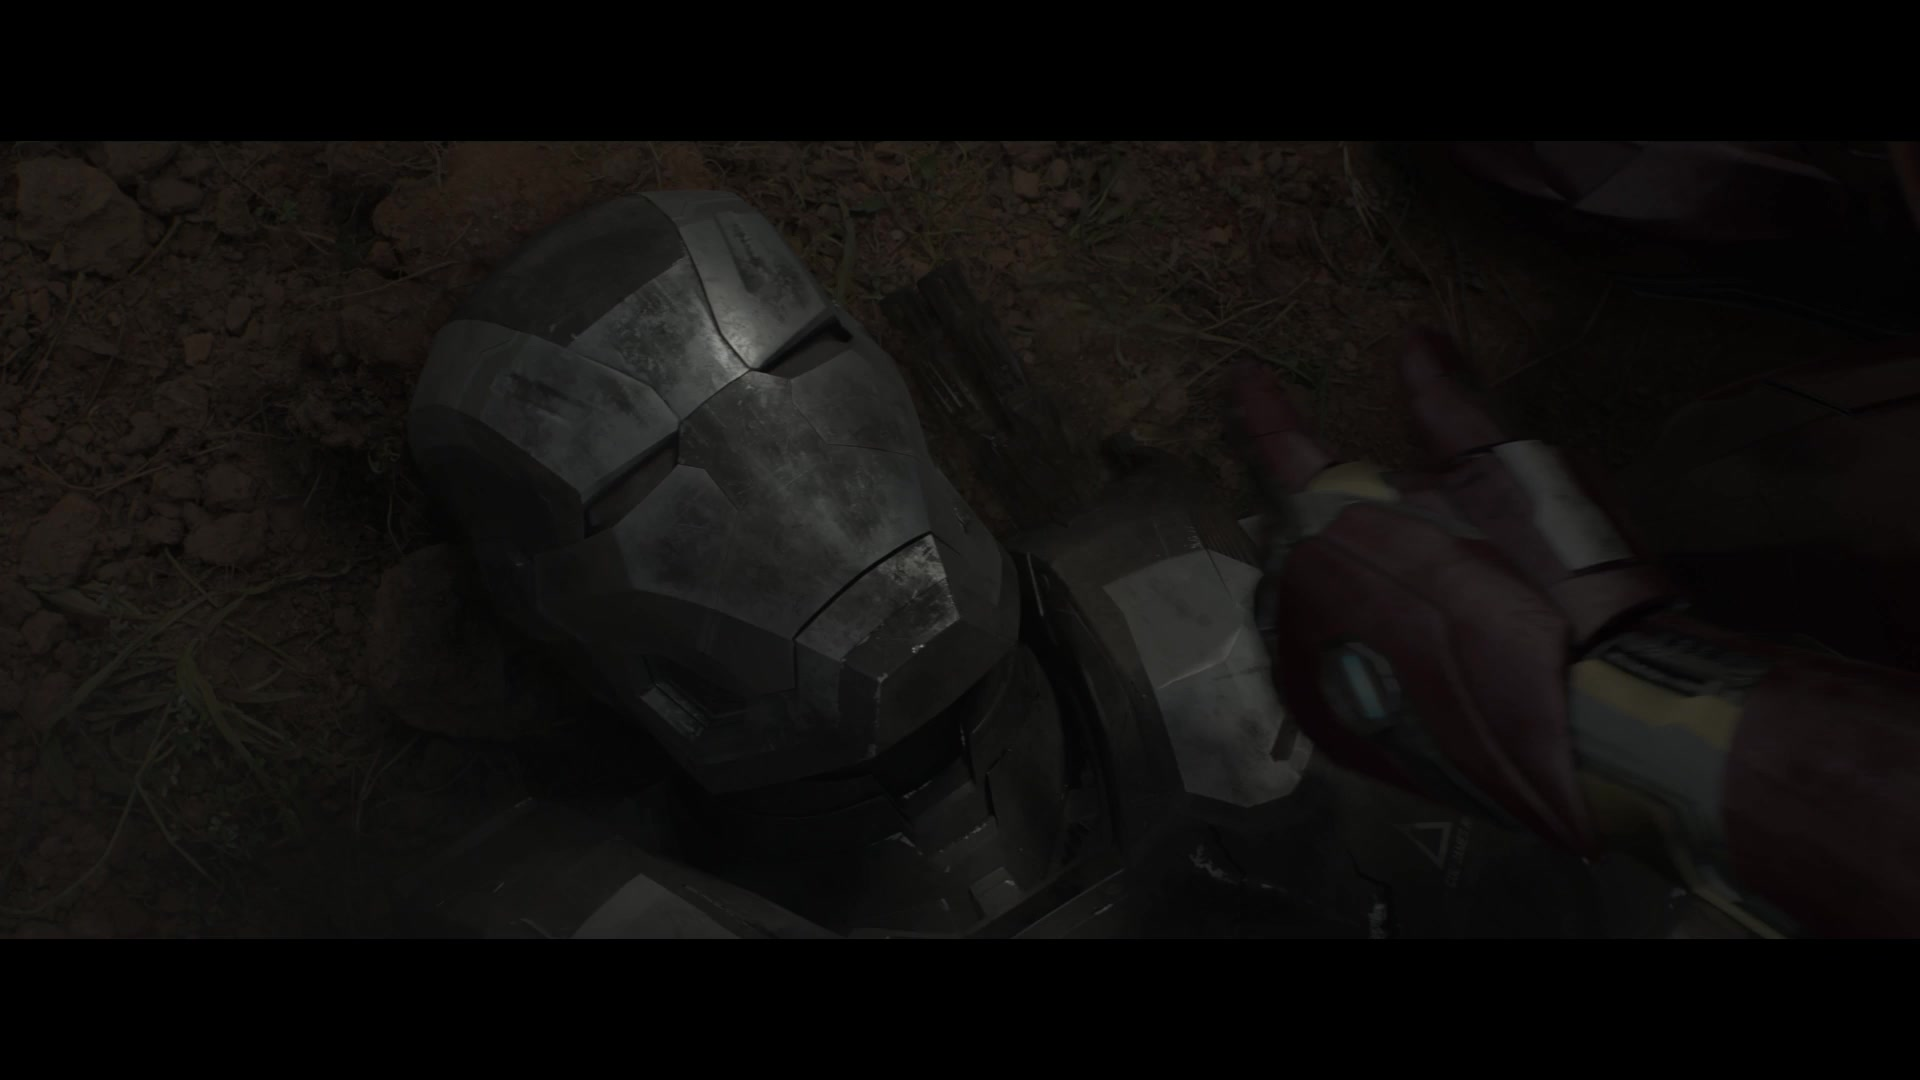 Marvel's Captain America: Civil War (2016) - Trailer No. 2